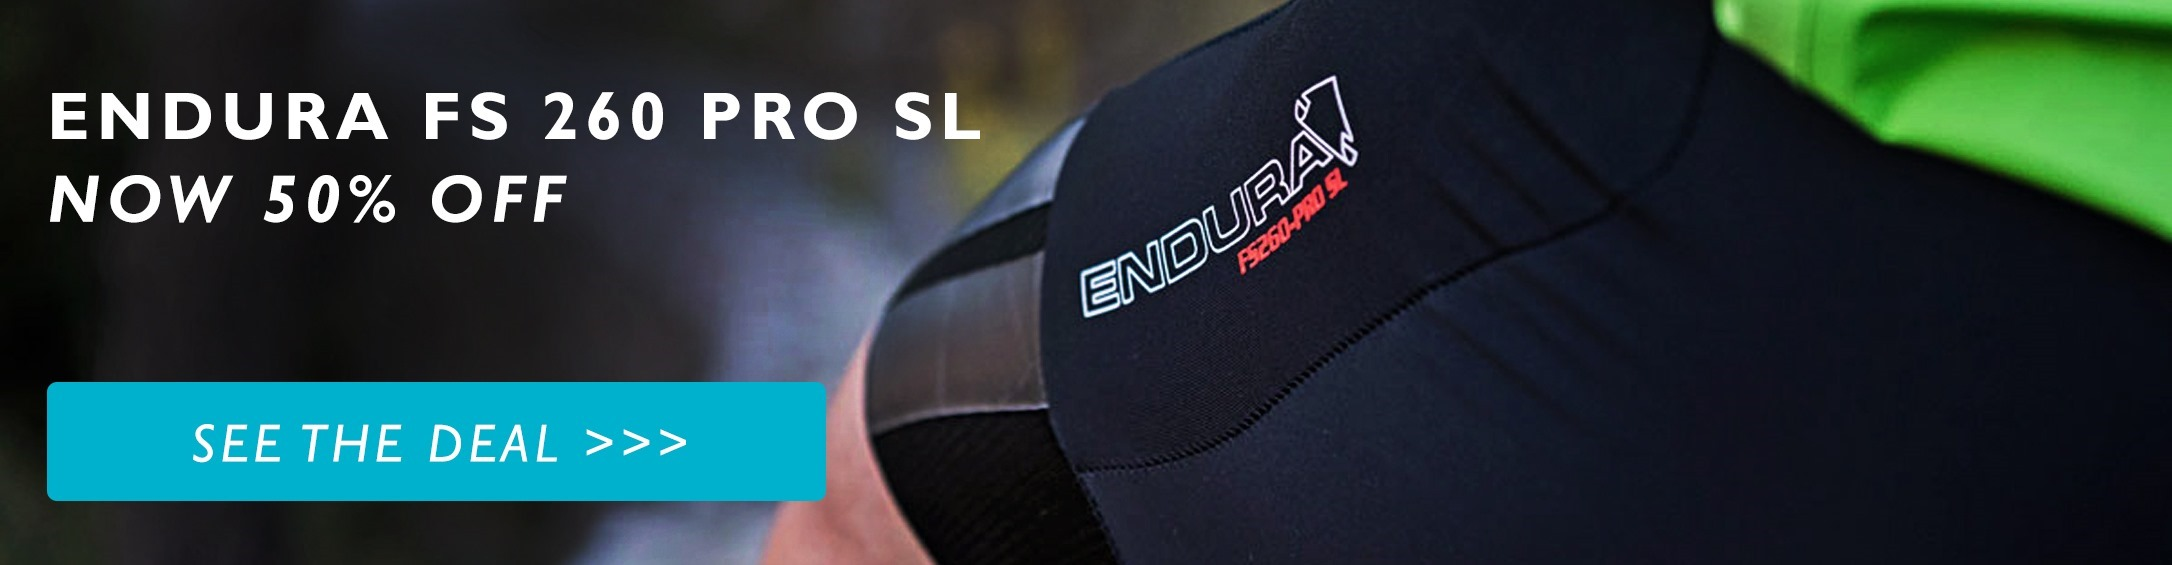 endura-fs260-prosl-bibshort-road-bike-sale_thumb[2]